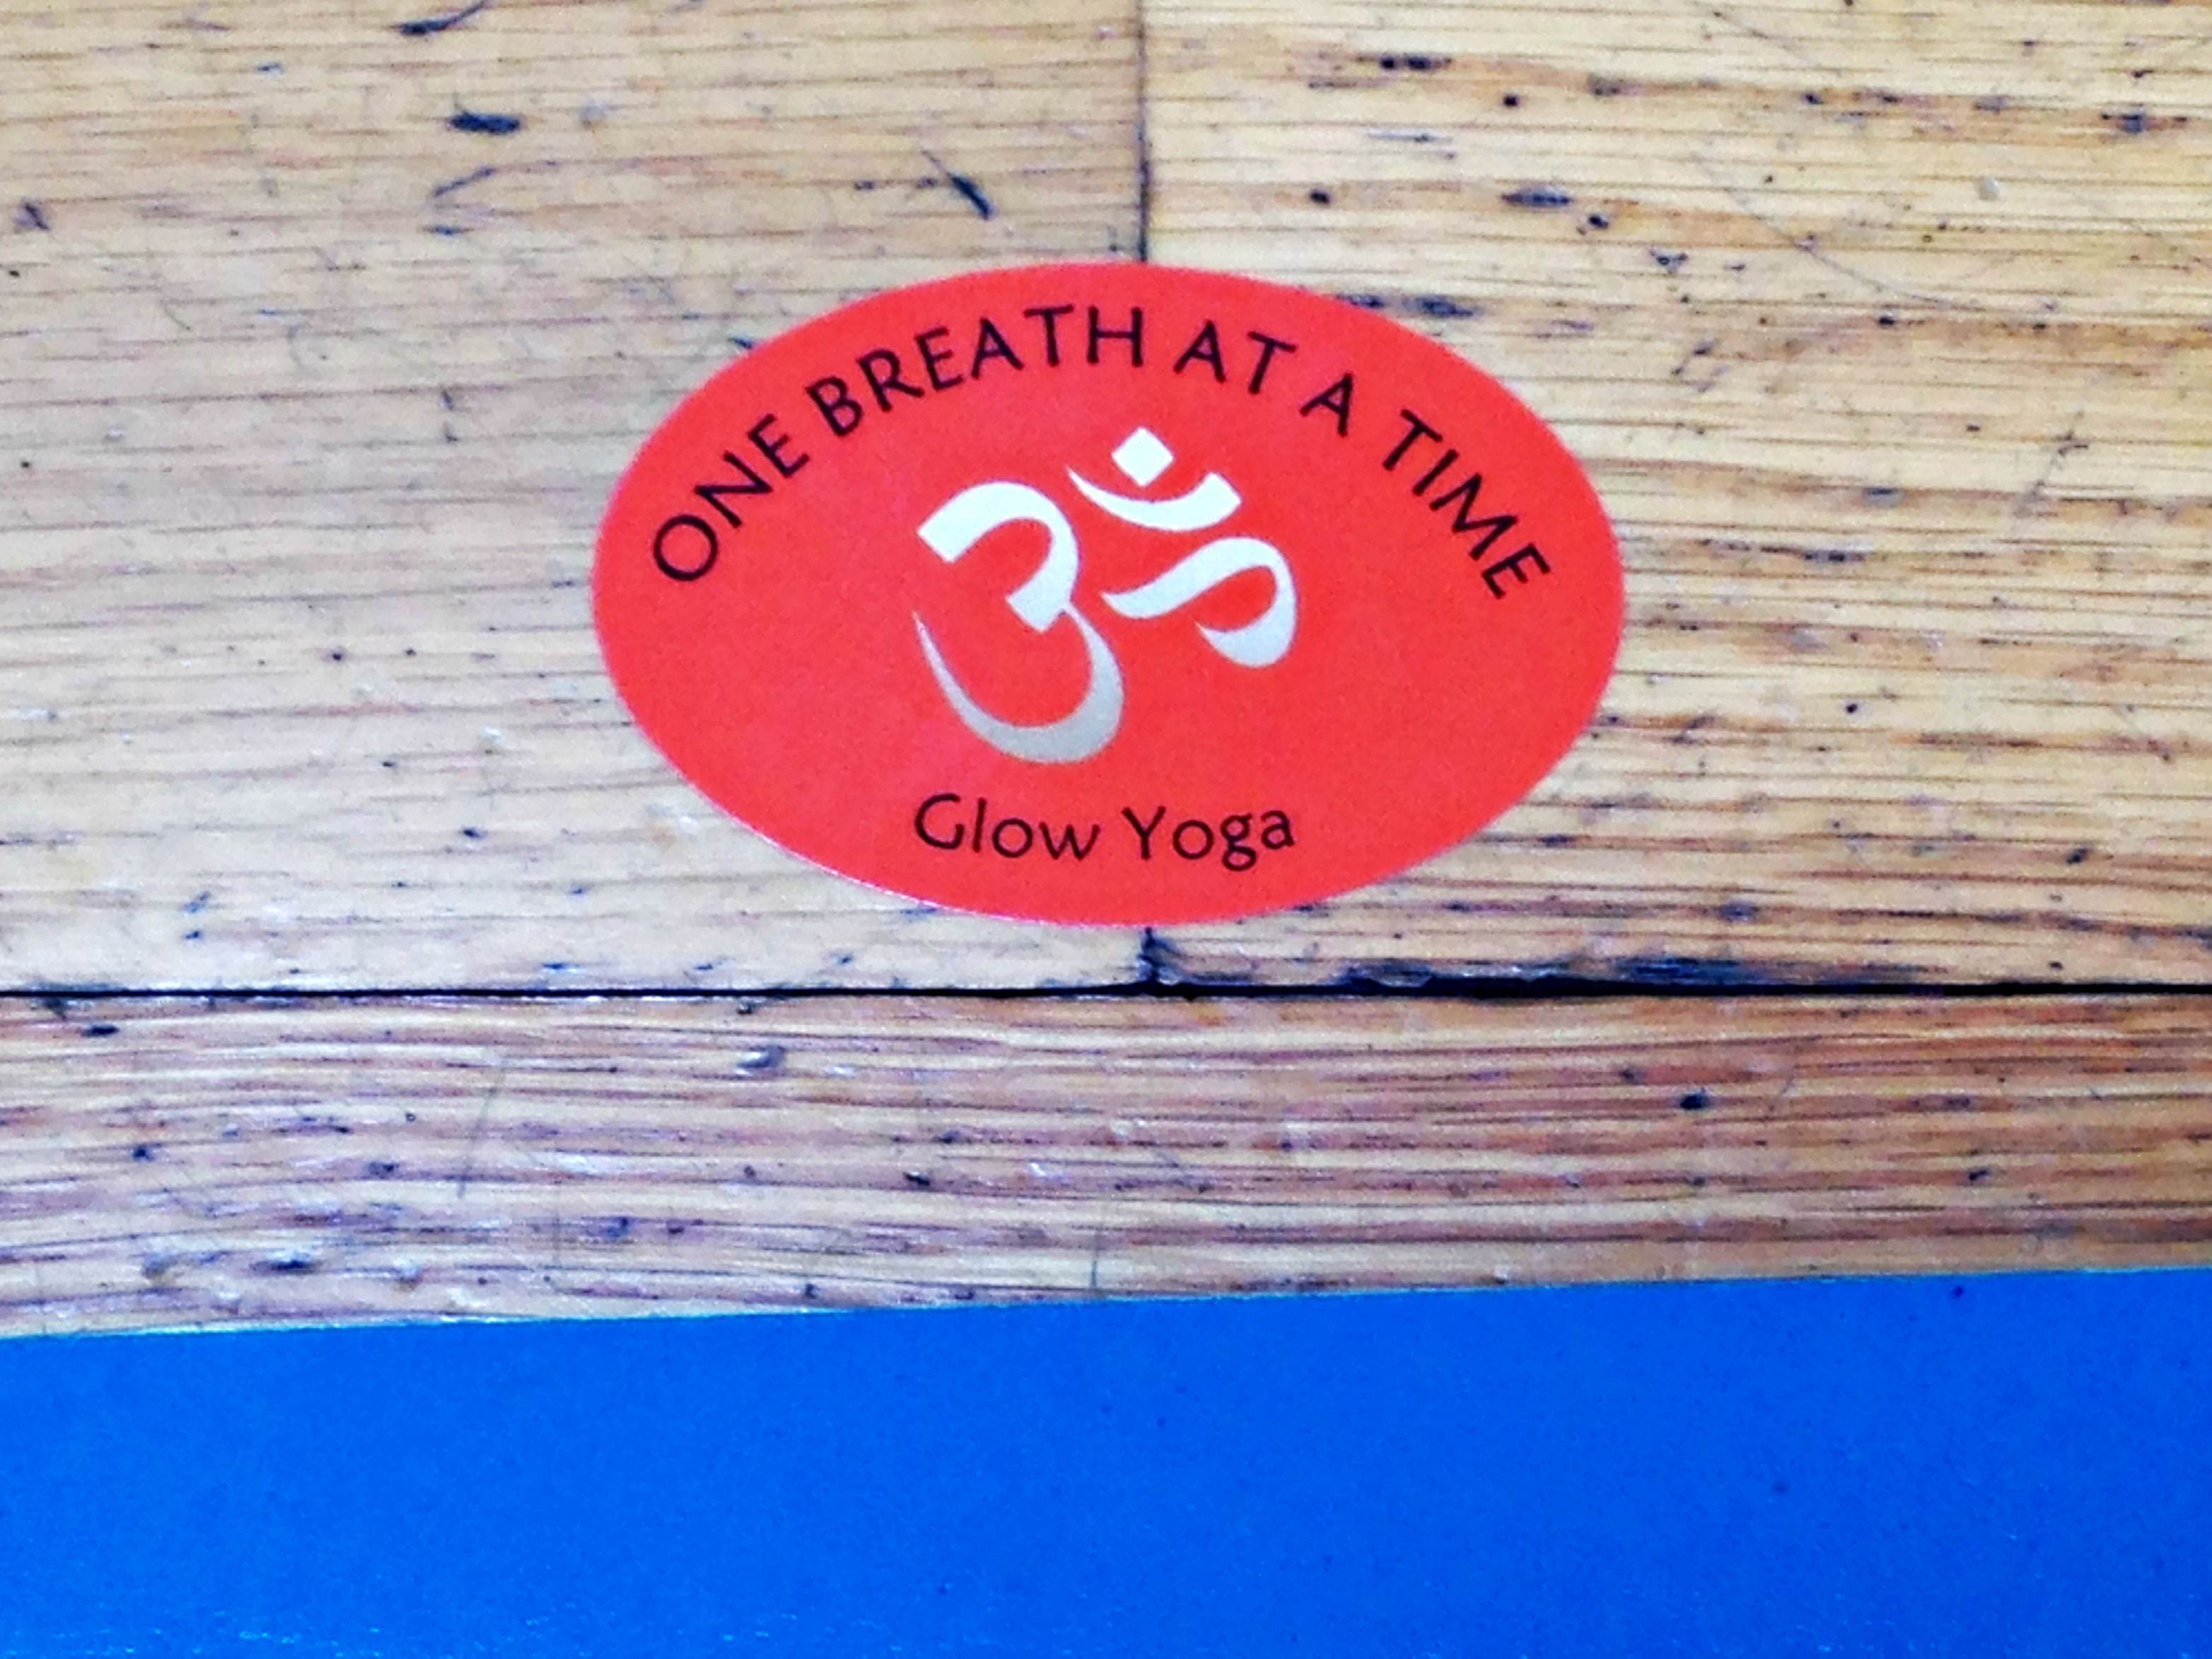 Glow Yoga Breathe